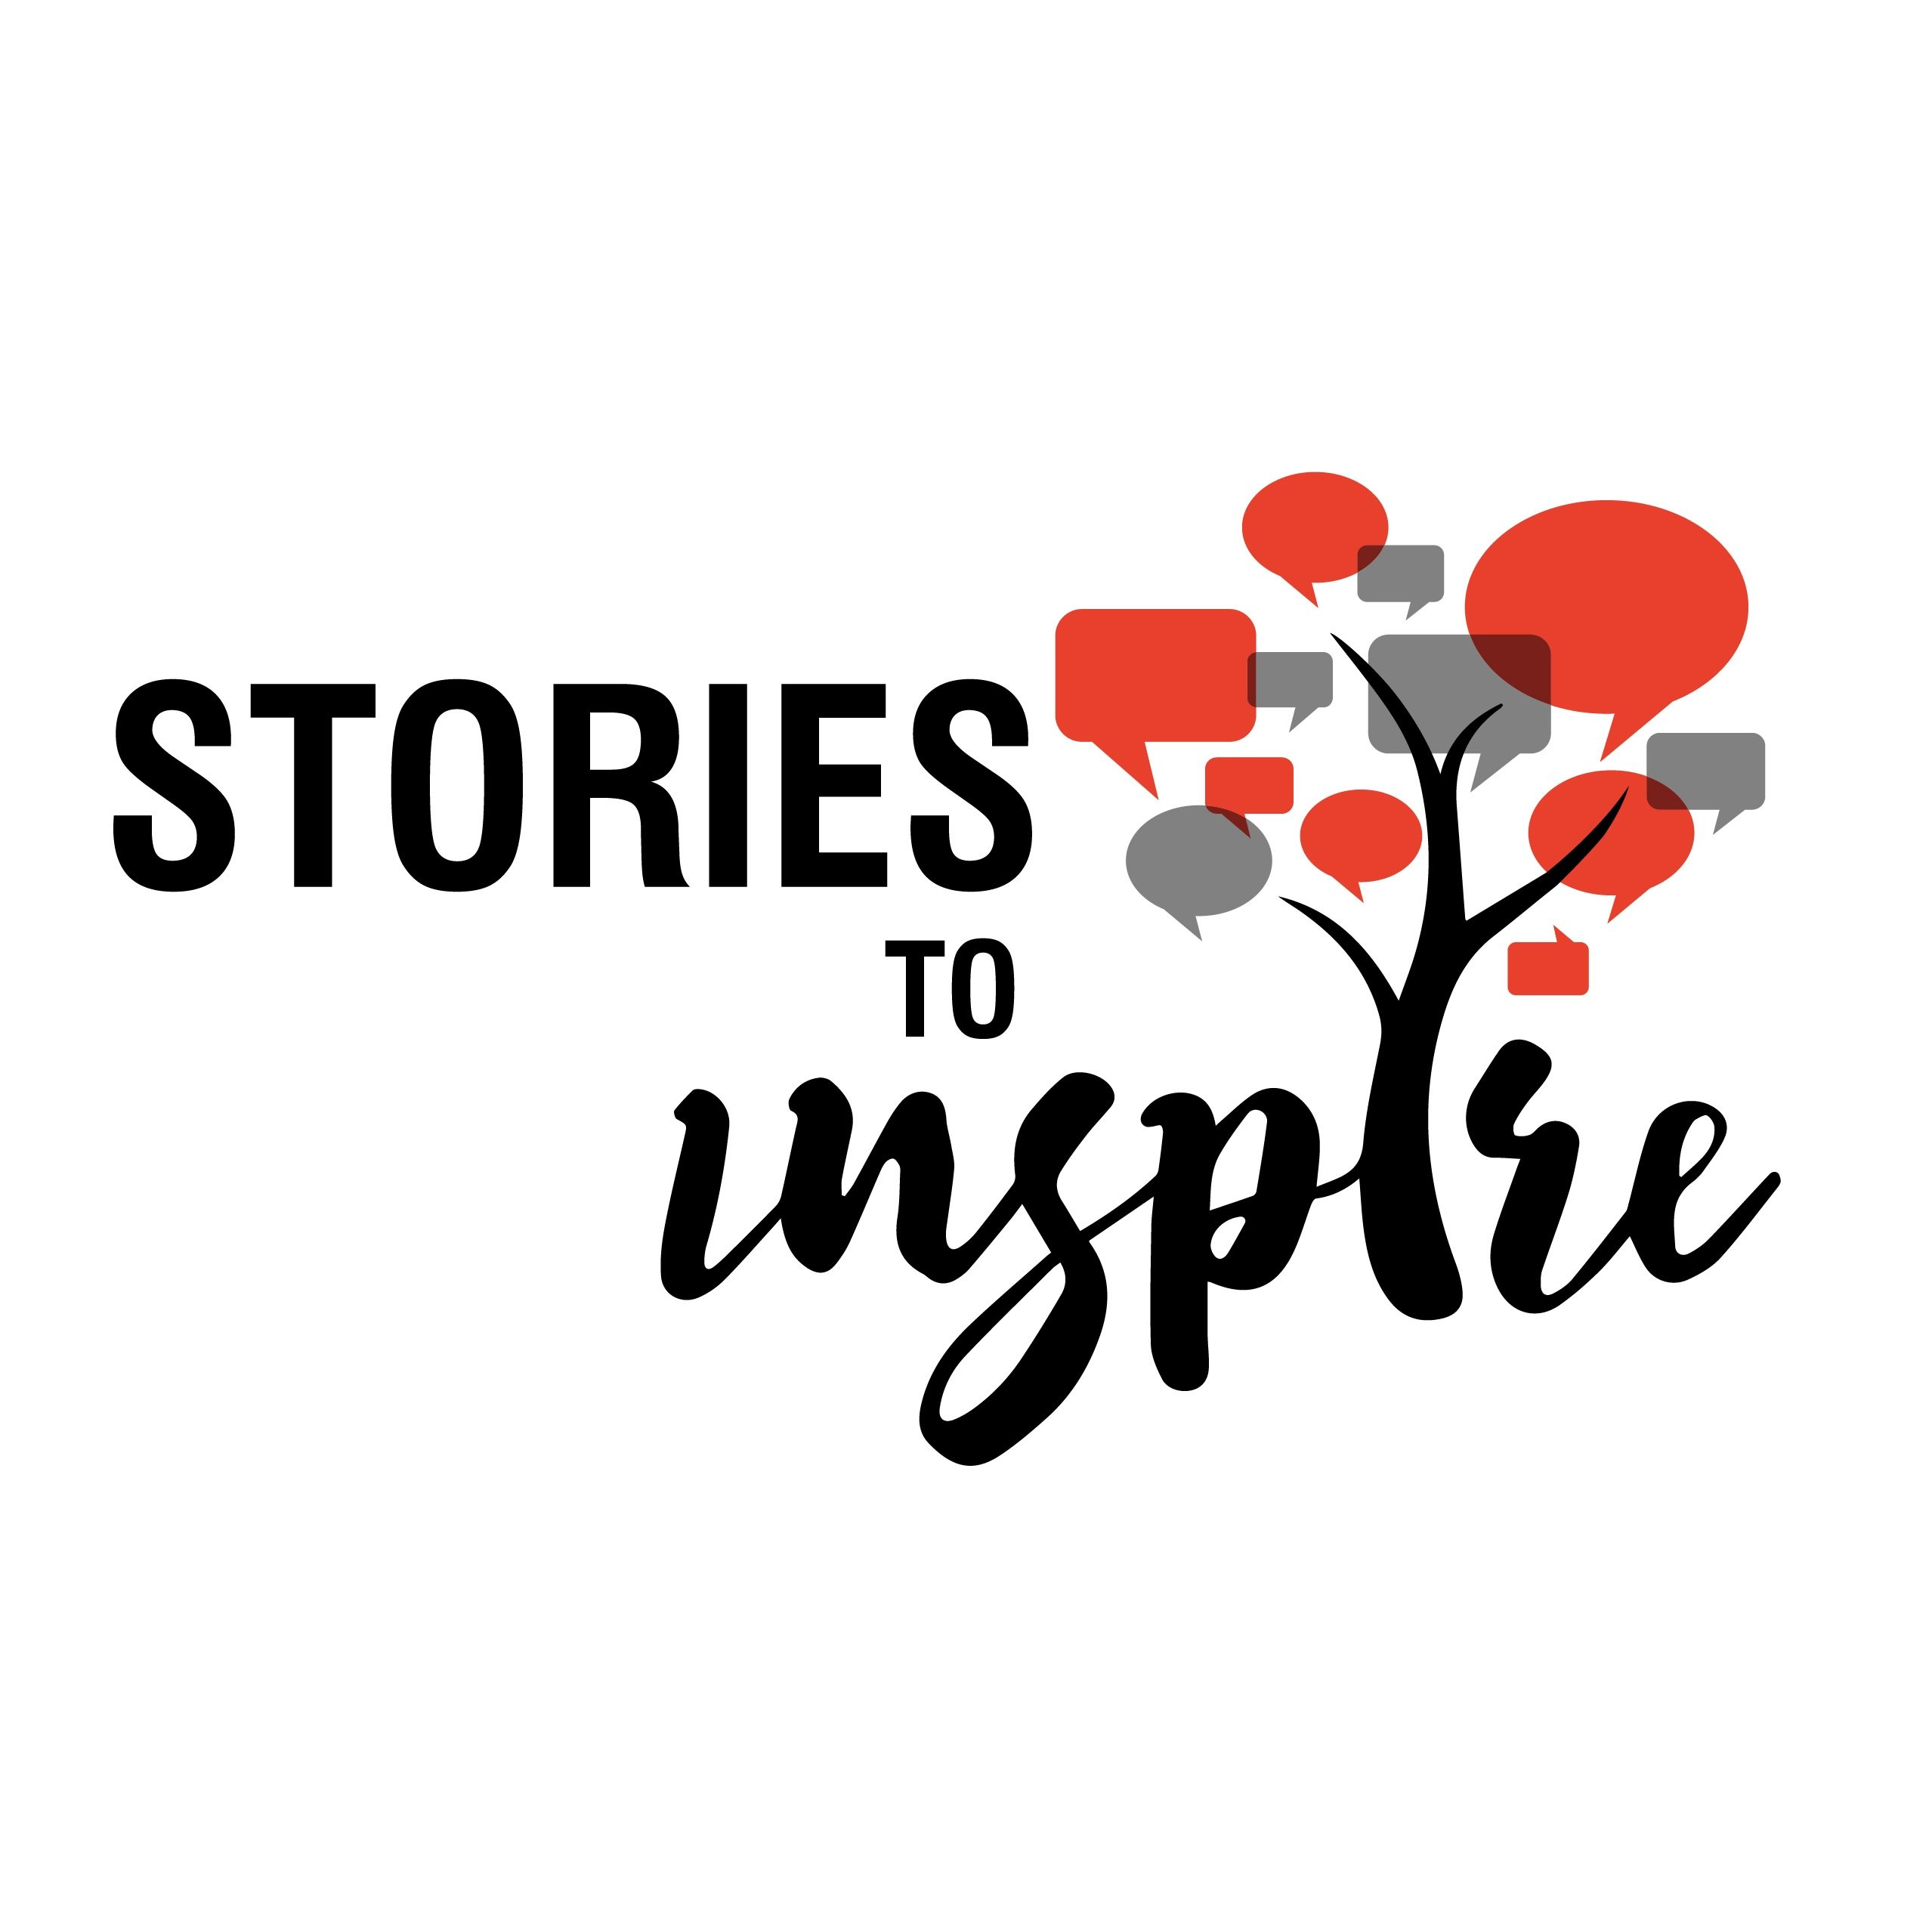 StoriesToInspire.org | Thousands of Free Inspiring Stories Based On The Torah's Ethics, Values and Wisdom